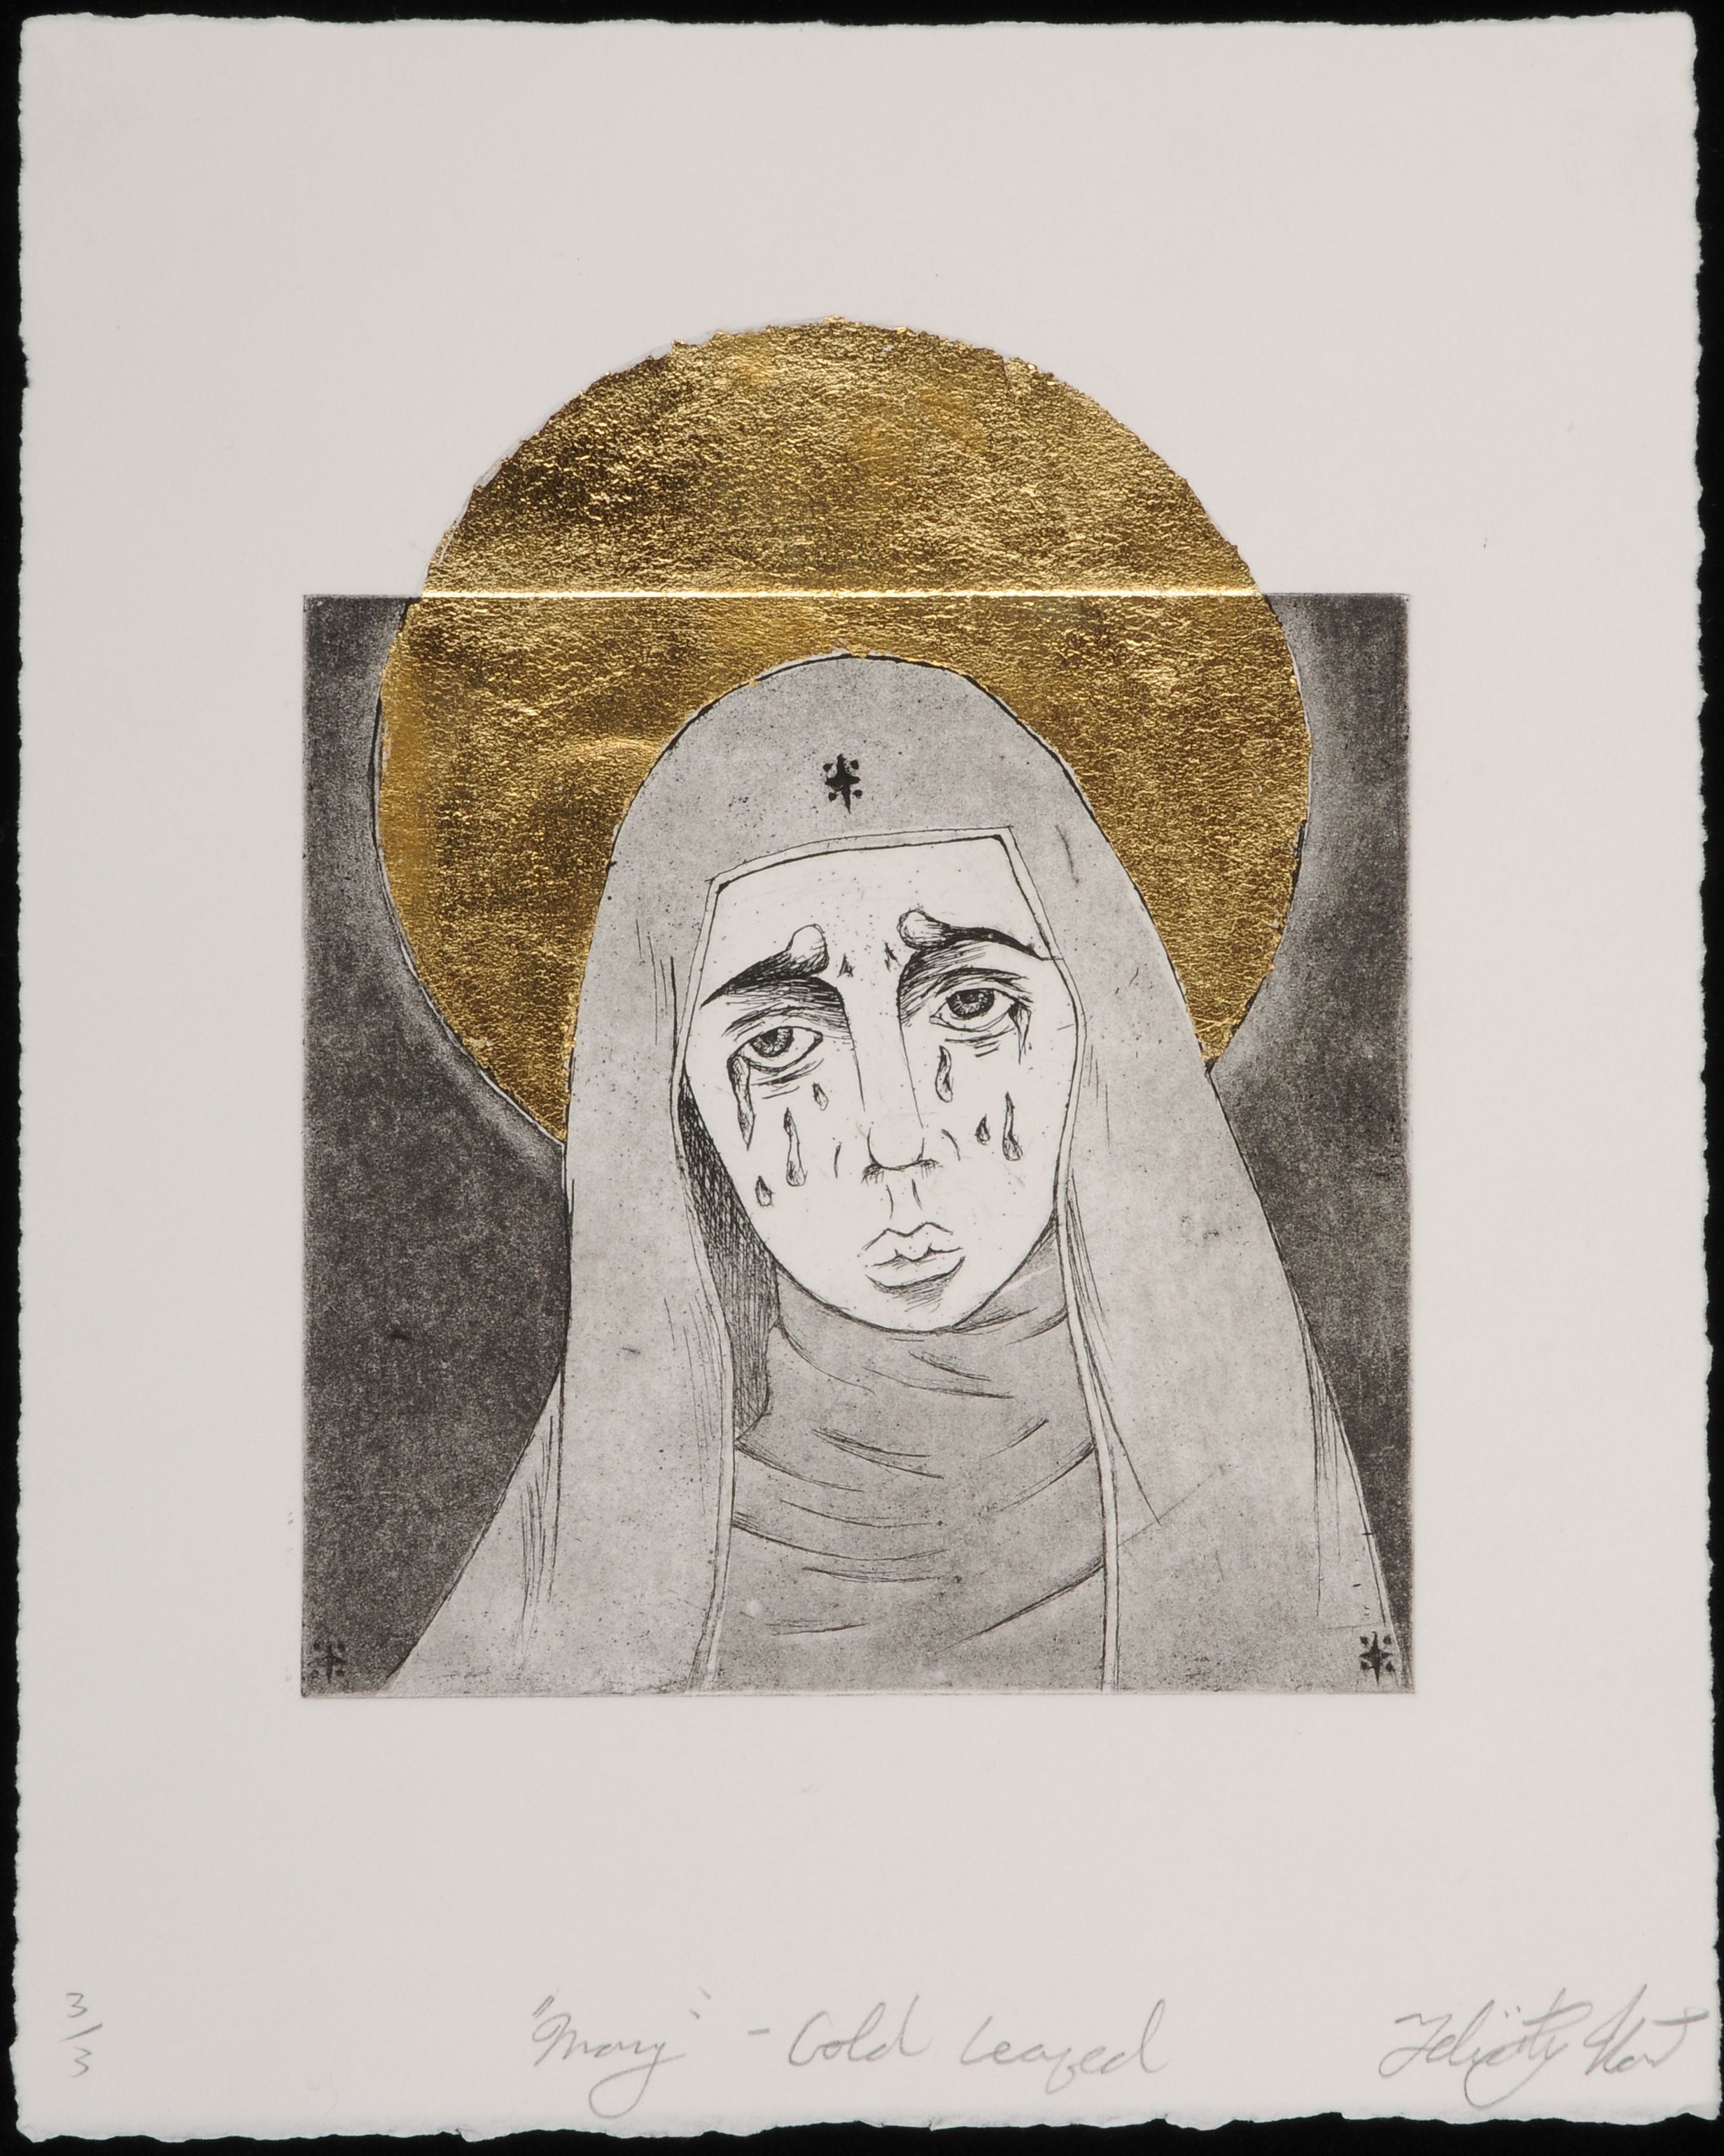 Mary (Gold Leafed)